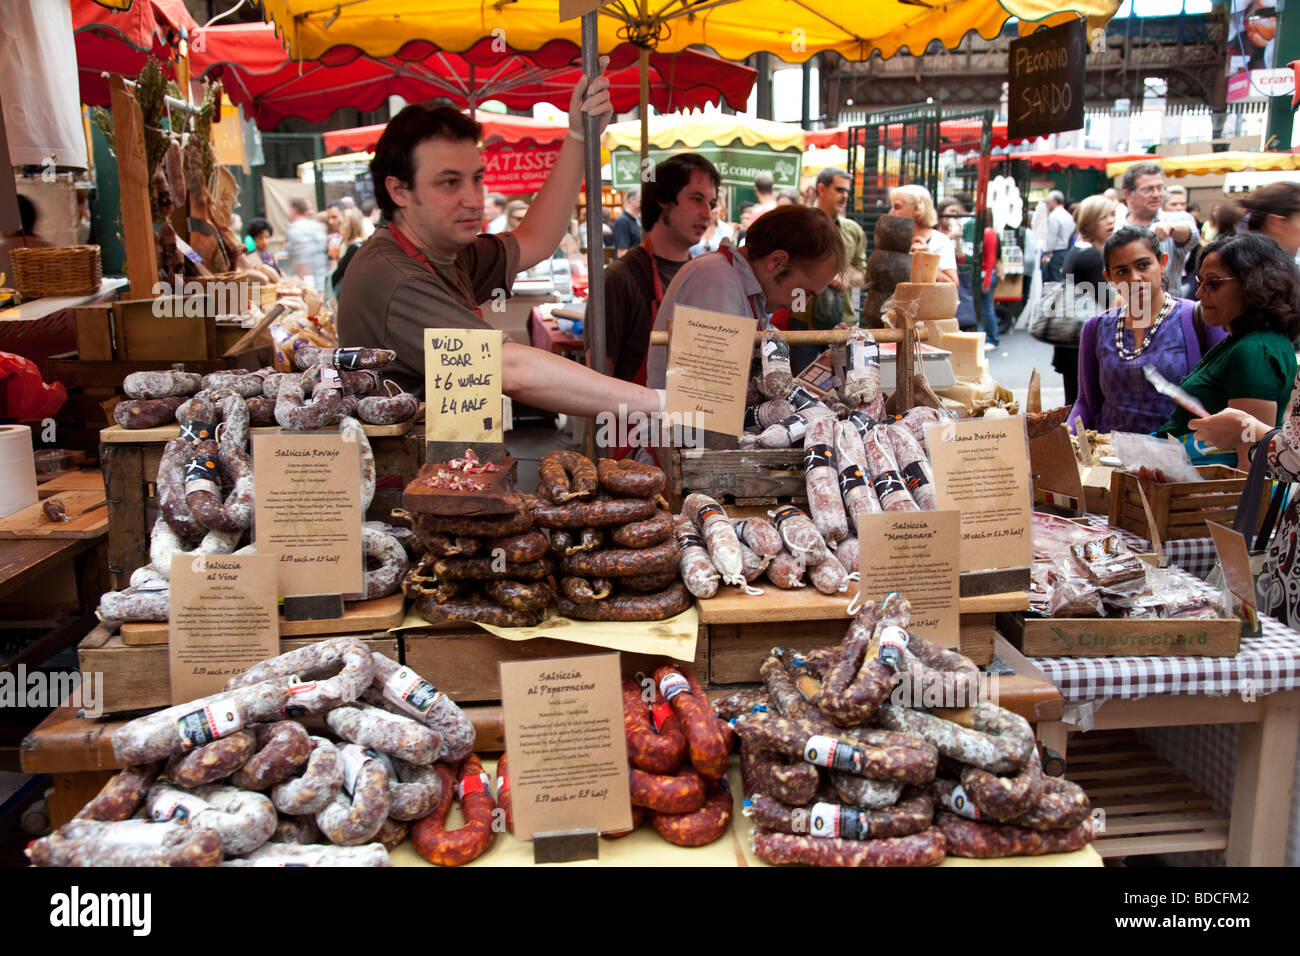 Cured meat seller at Borough Market. - Stock Image